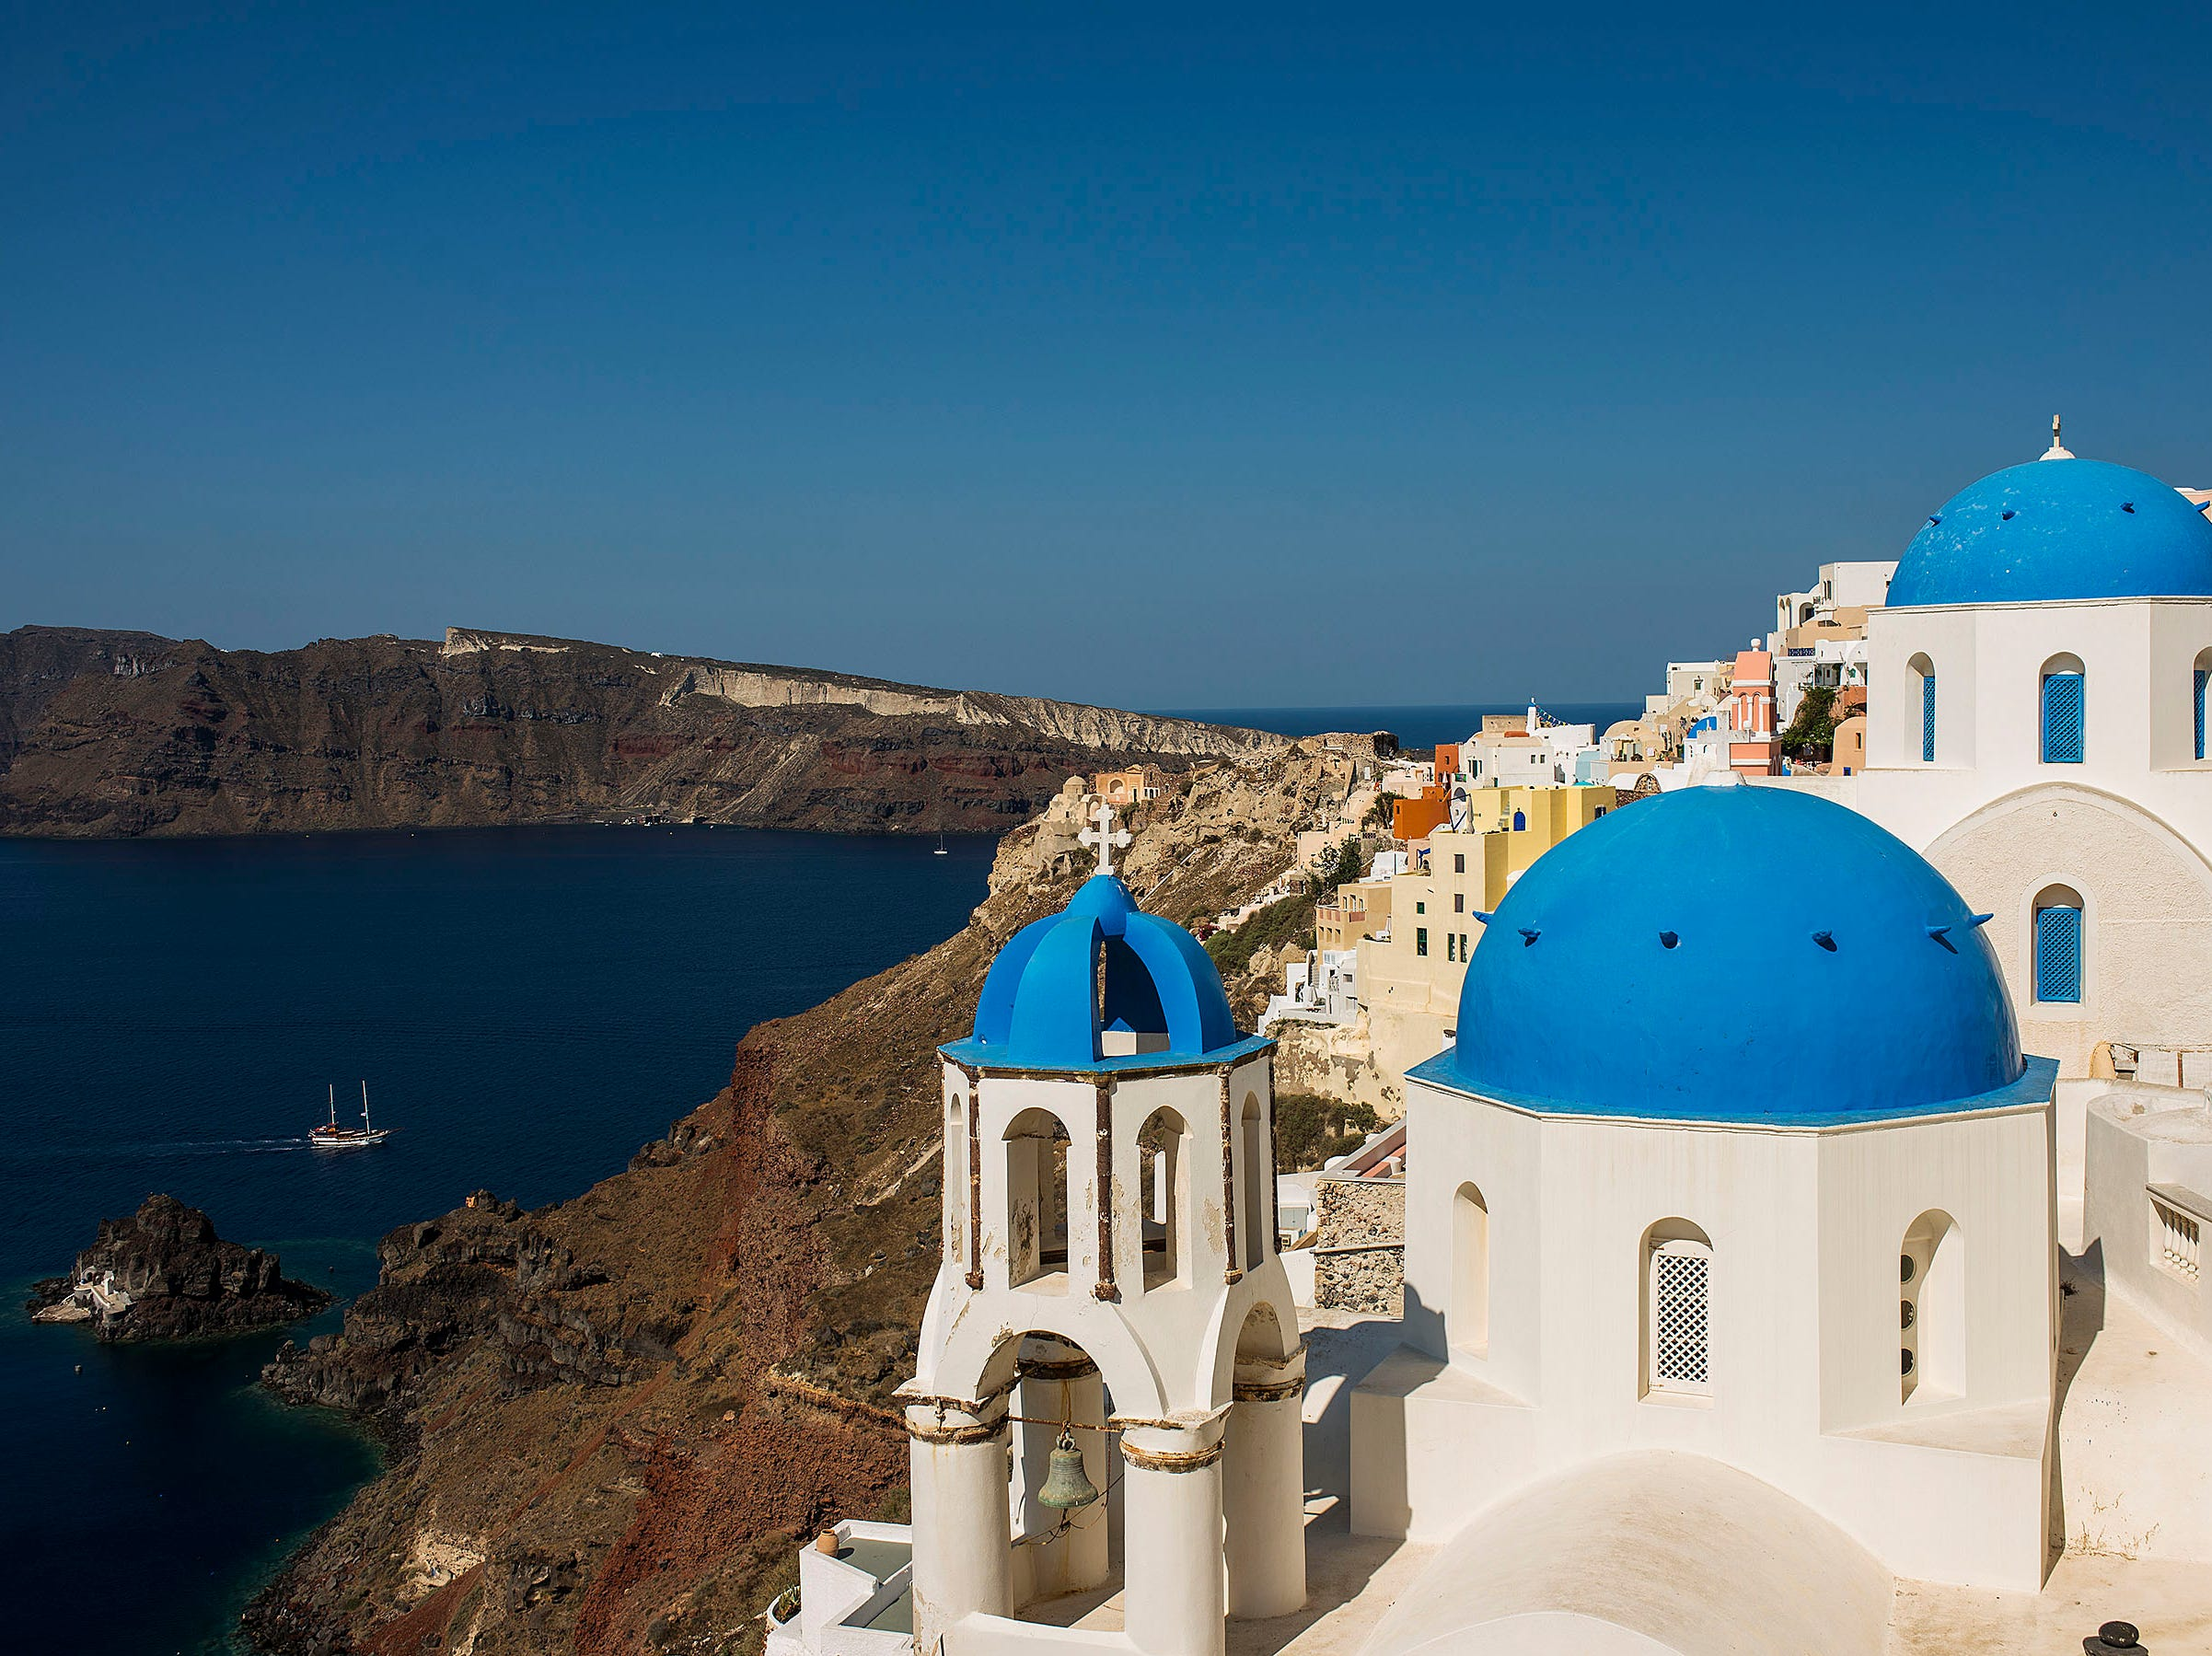 In summer 2020, Disney Cruise Line will embark on a variety of itineraries around the world, including a long-awaited return to Greece and the addition of five first-time ports of call in Europe. During one 12-night and two nine-night cruises from Rome, guests can marvel at the beautiful landscapes and archeological wonders of destinations like Piraeus, the gateway to Athens; Katakolon, near ancient Olympia; and the islands of Santorini, Mykonos and Crete.